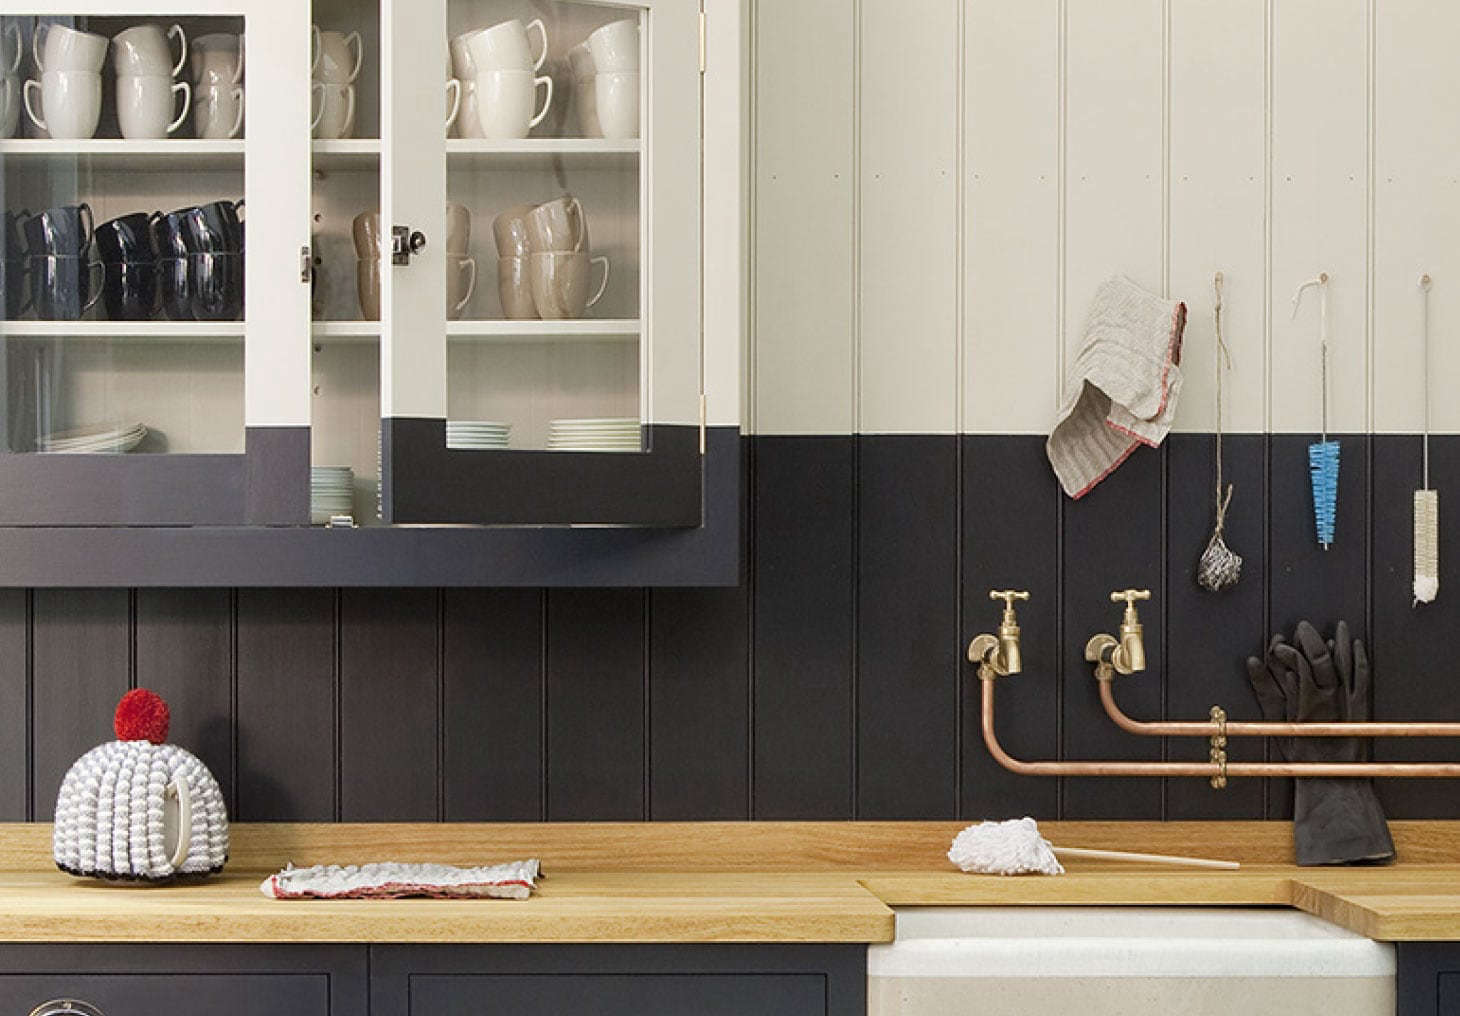 The British Standard line includes glazed wall cabinets as well.